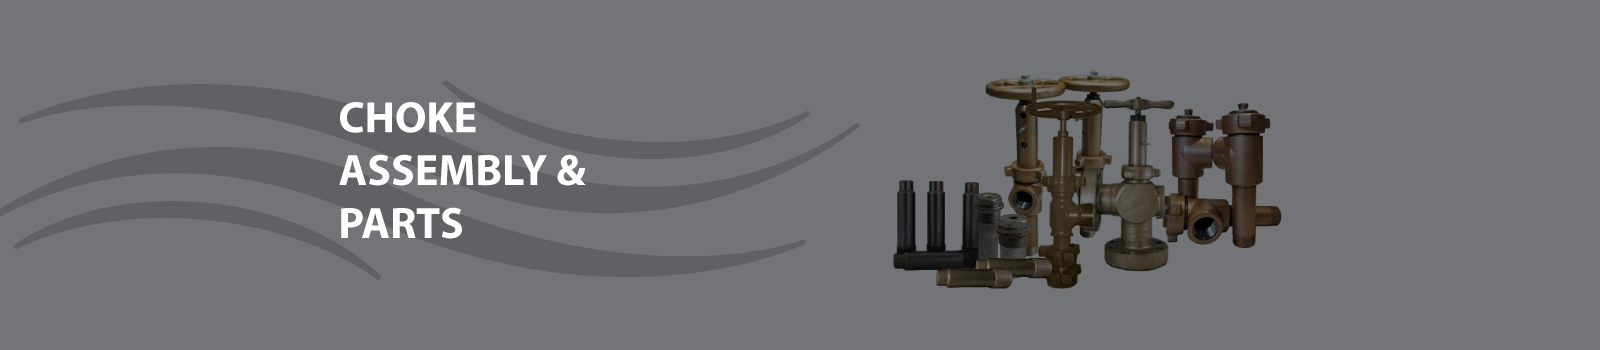 choke assembly and parts banner